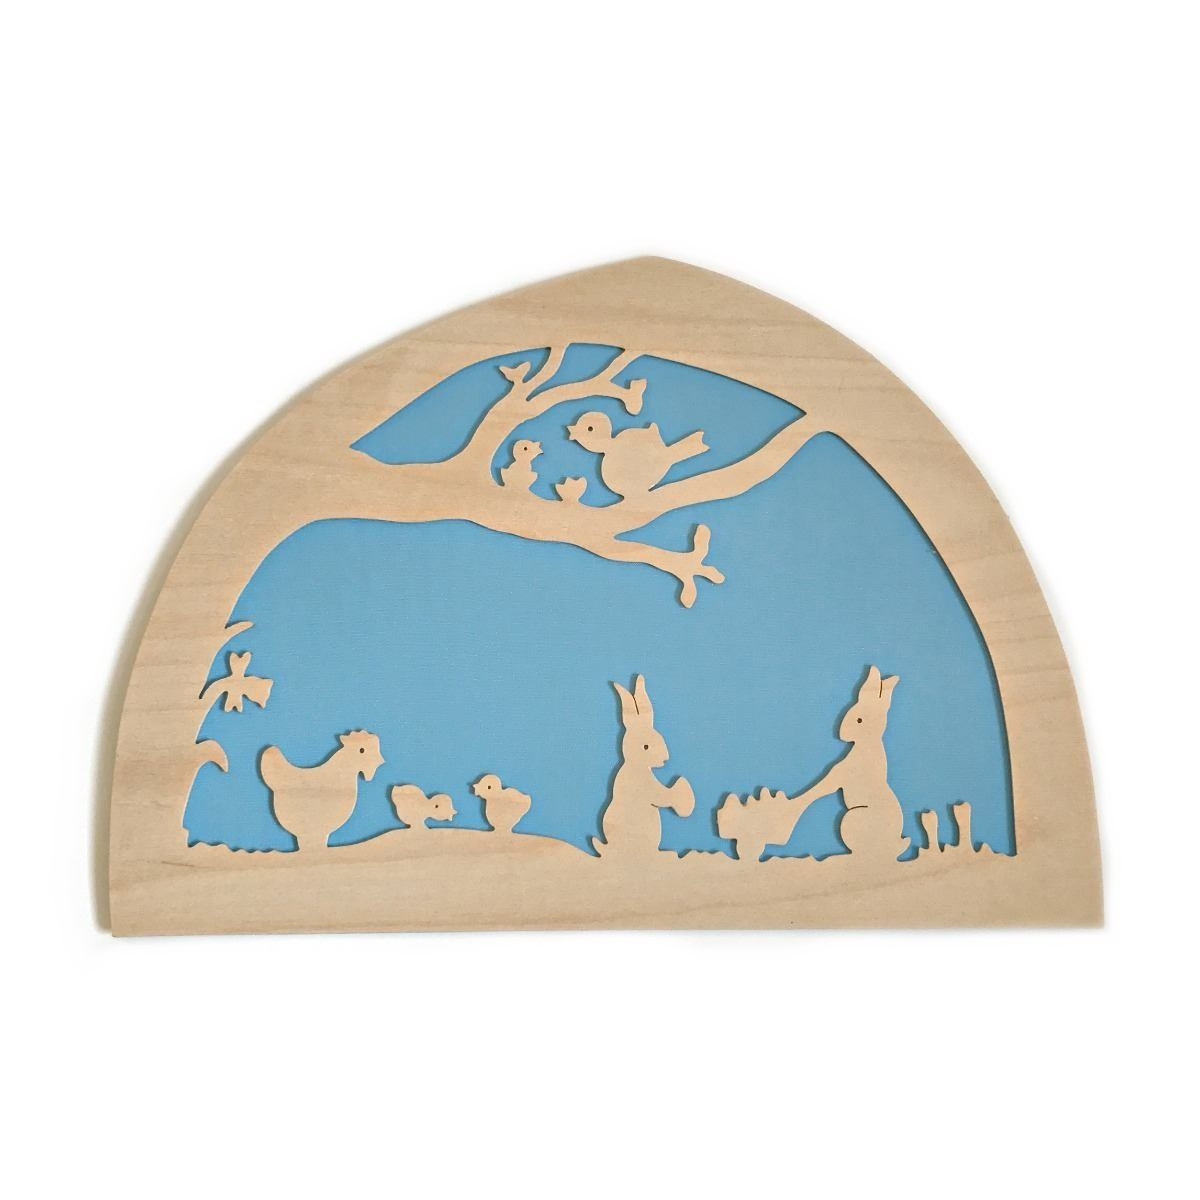 de-noest-silhouette-for-lamp-easter-bunny-blue